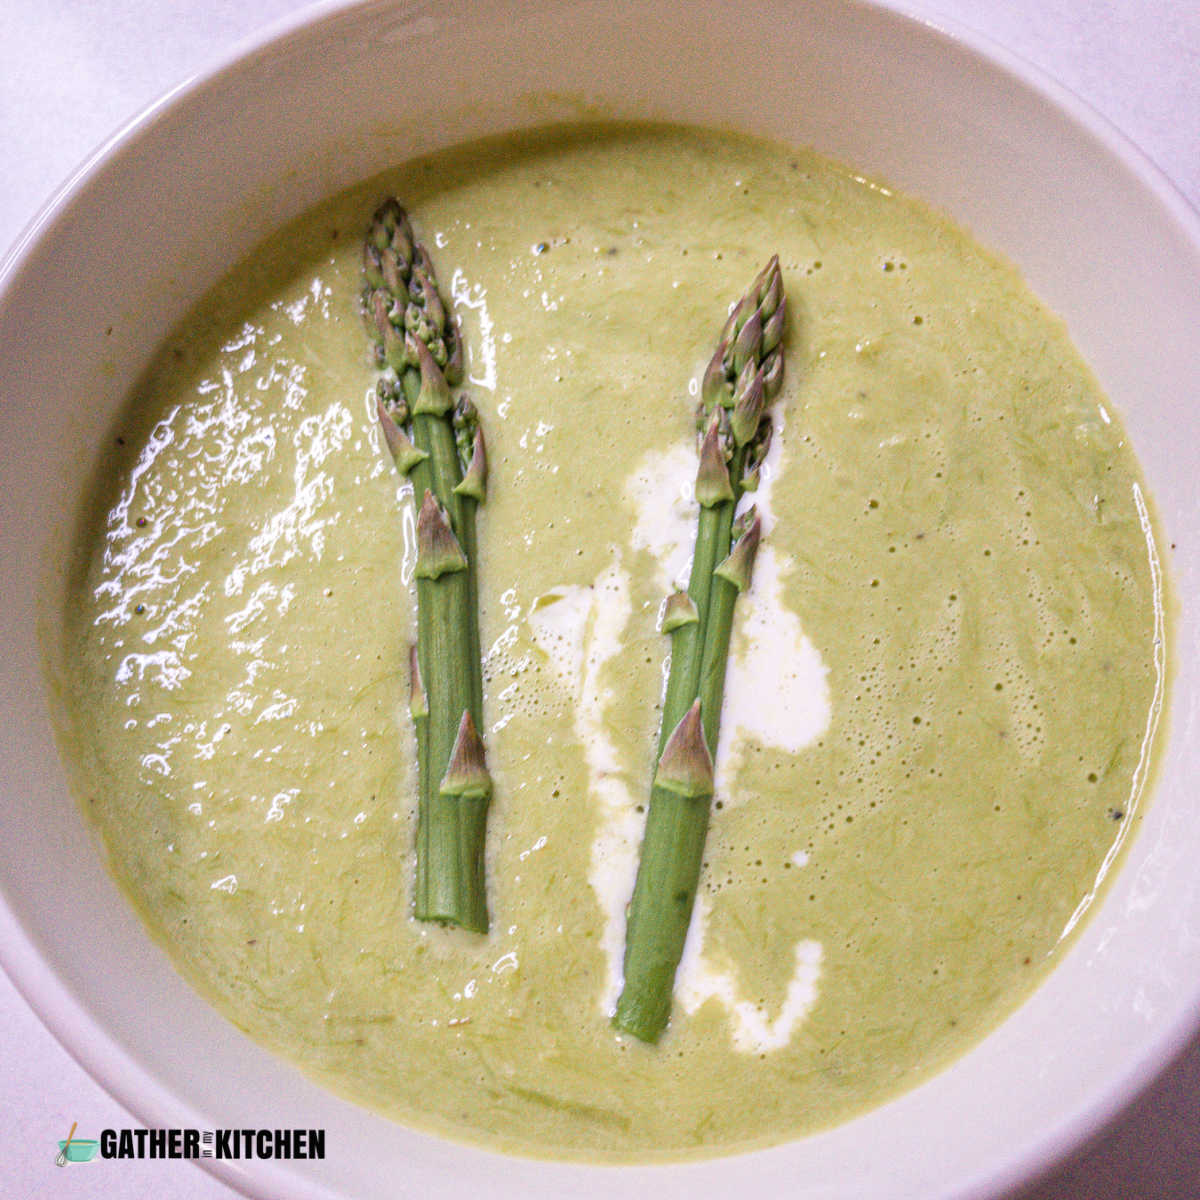 Top down view of a bowl of creamy asparagus soup.